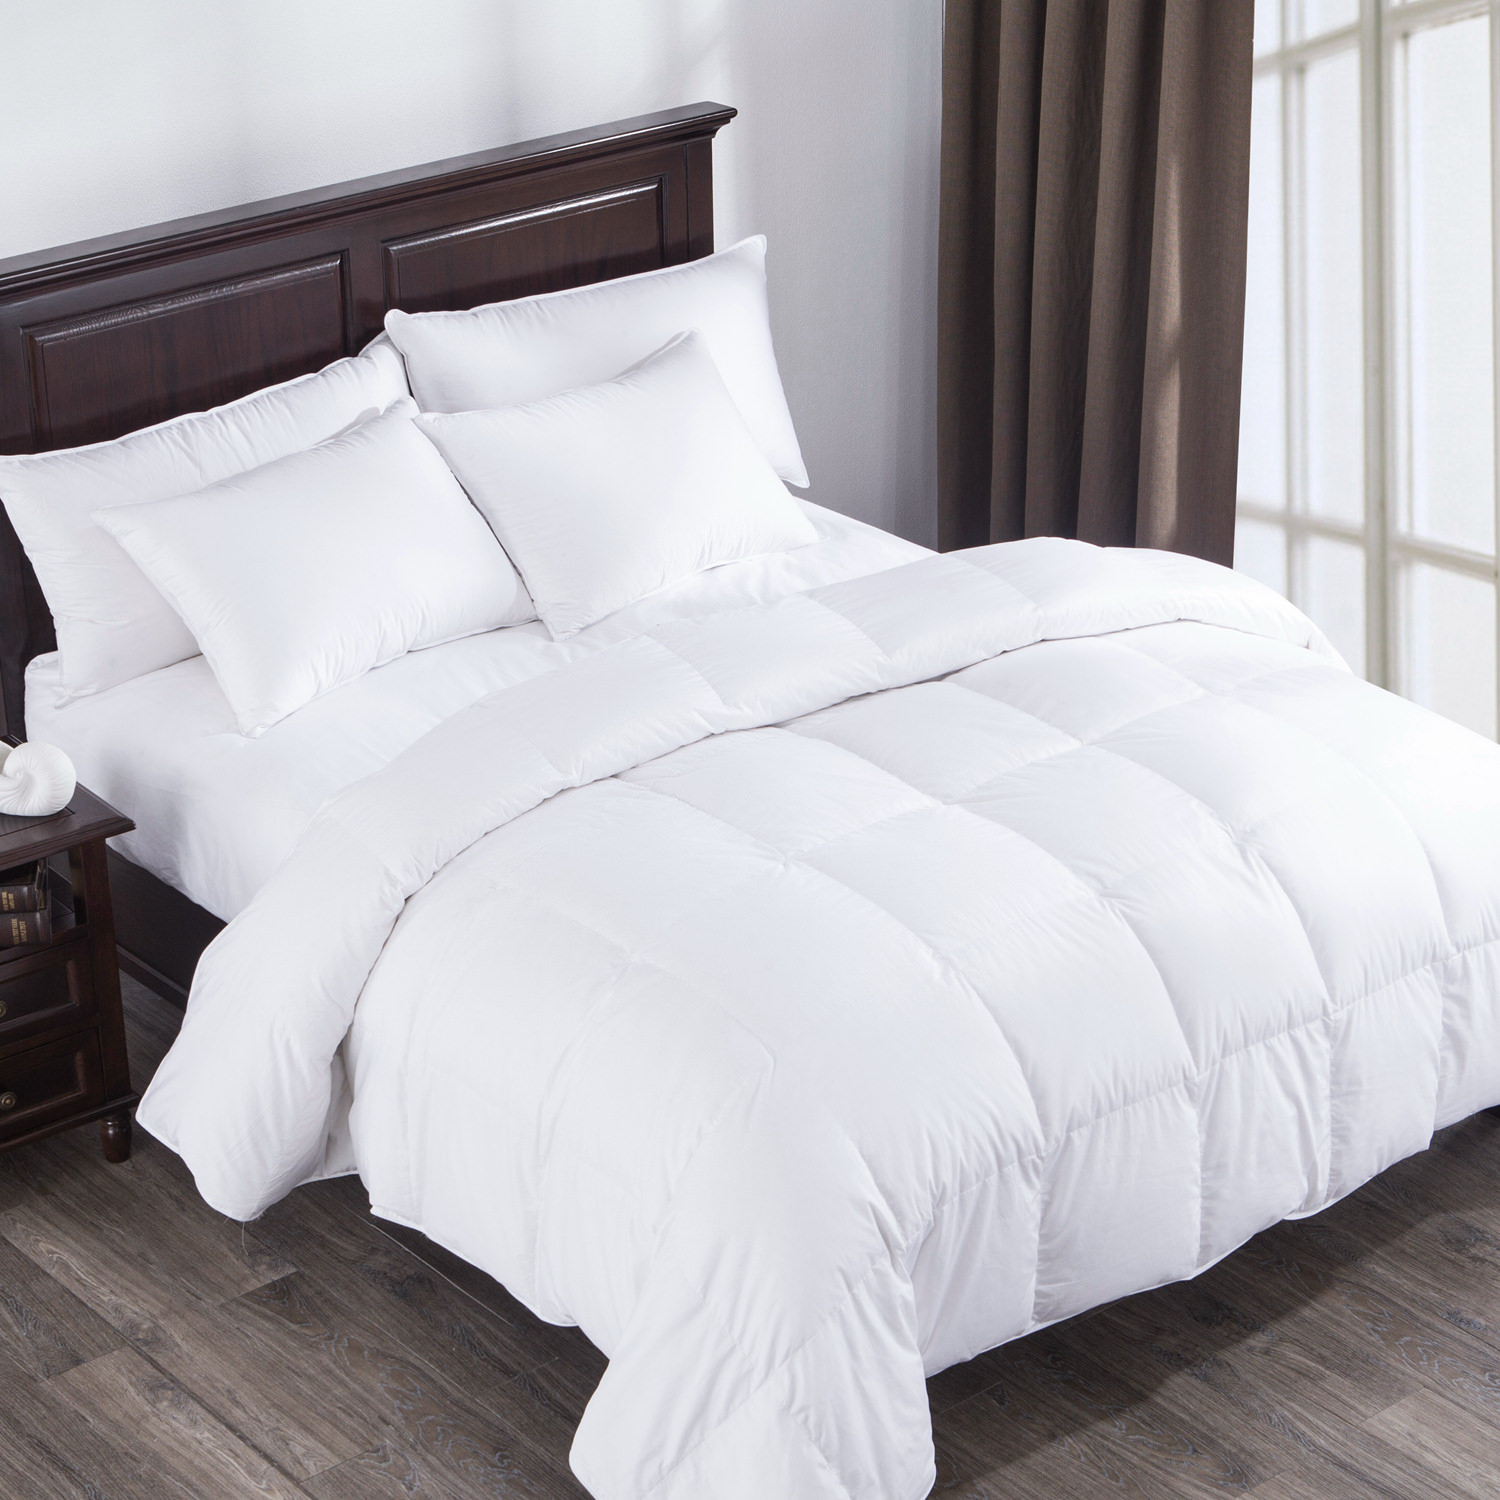 Puredown Heavy Fill White Goose Down Comforter 400 Thread Count 600 Fill Power Eygptian Cotton, Twin Size, White